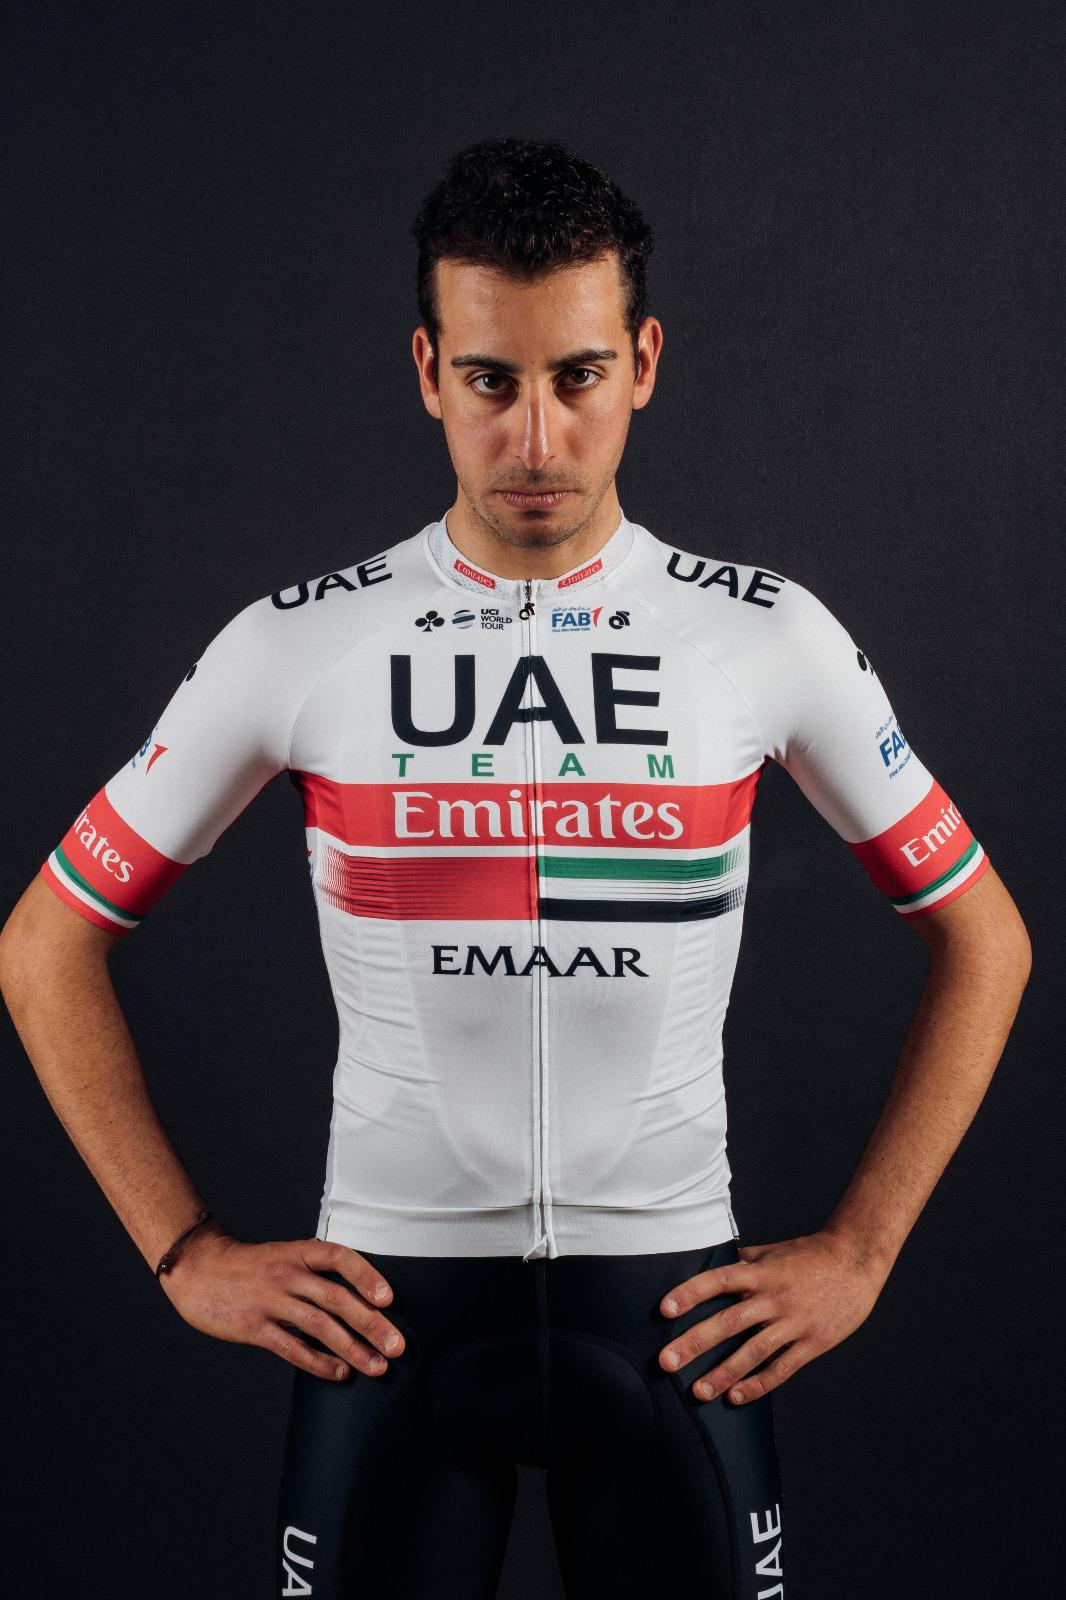 New UAE Team Emirates kit for Fabio Aru